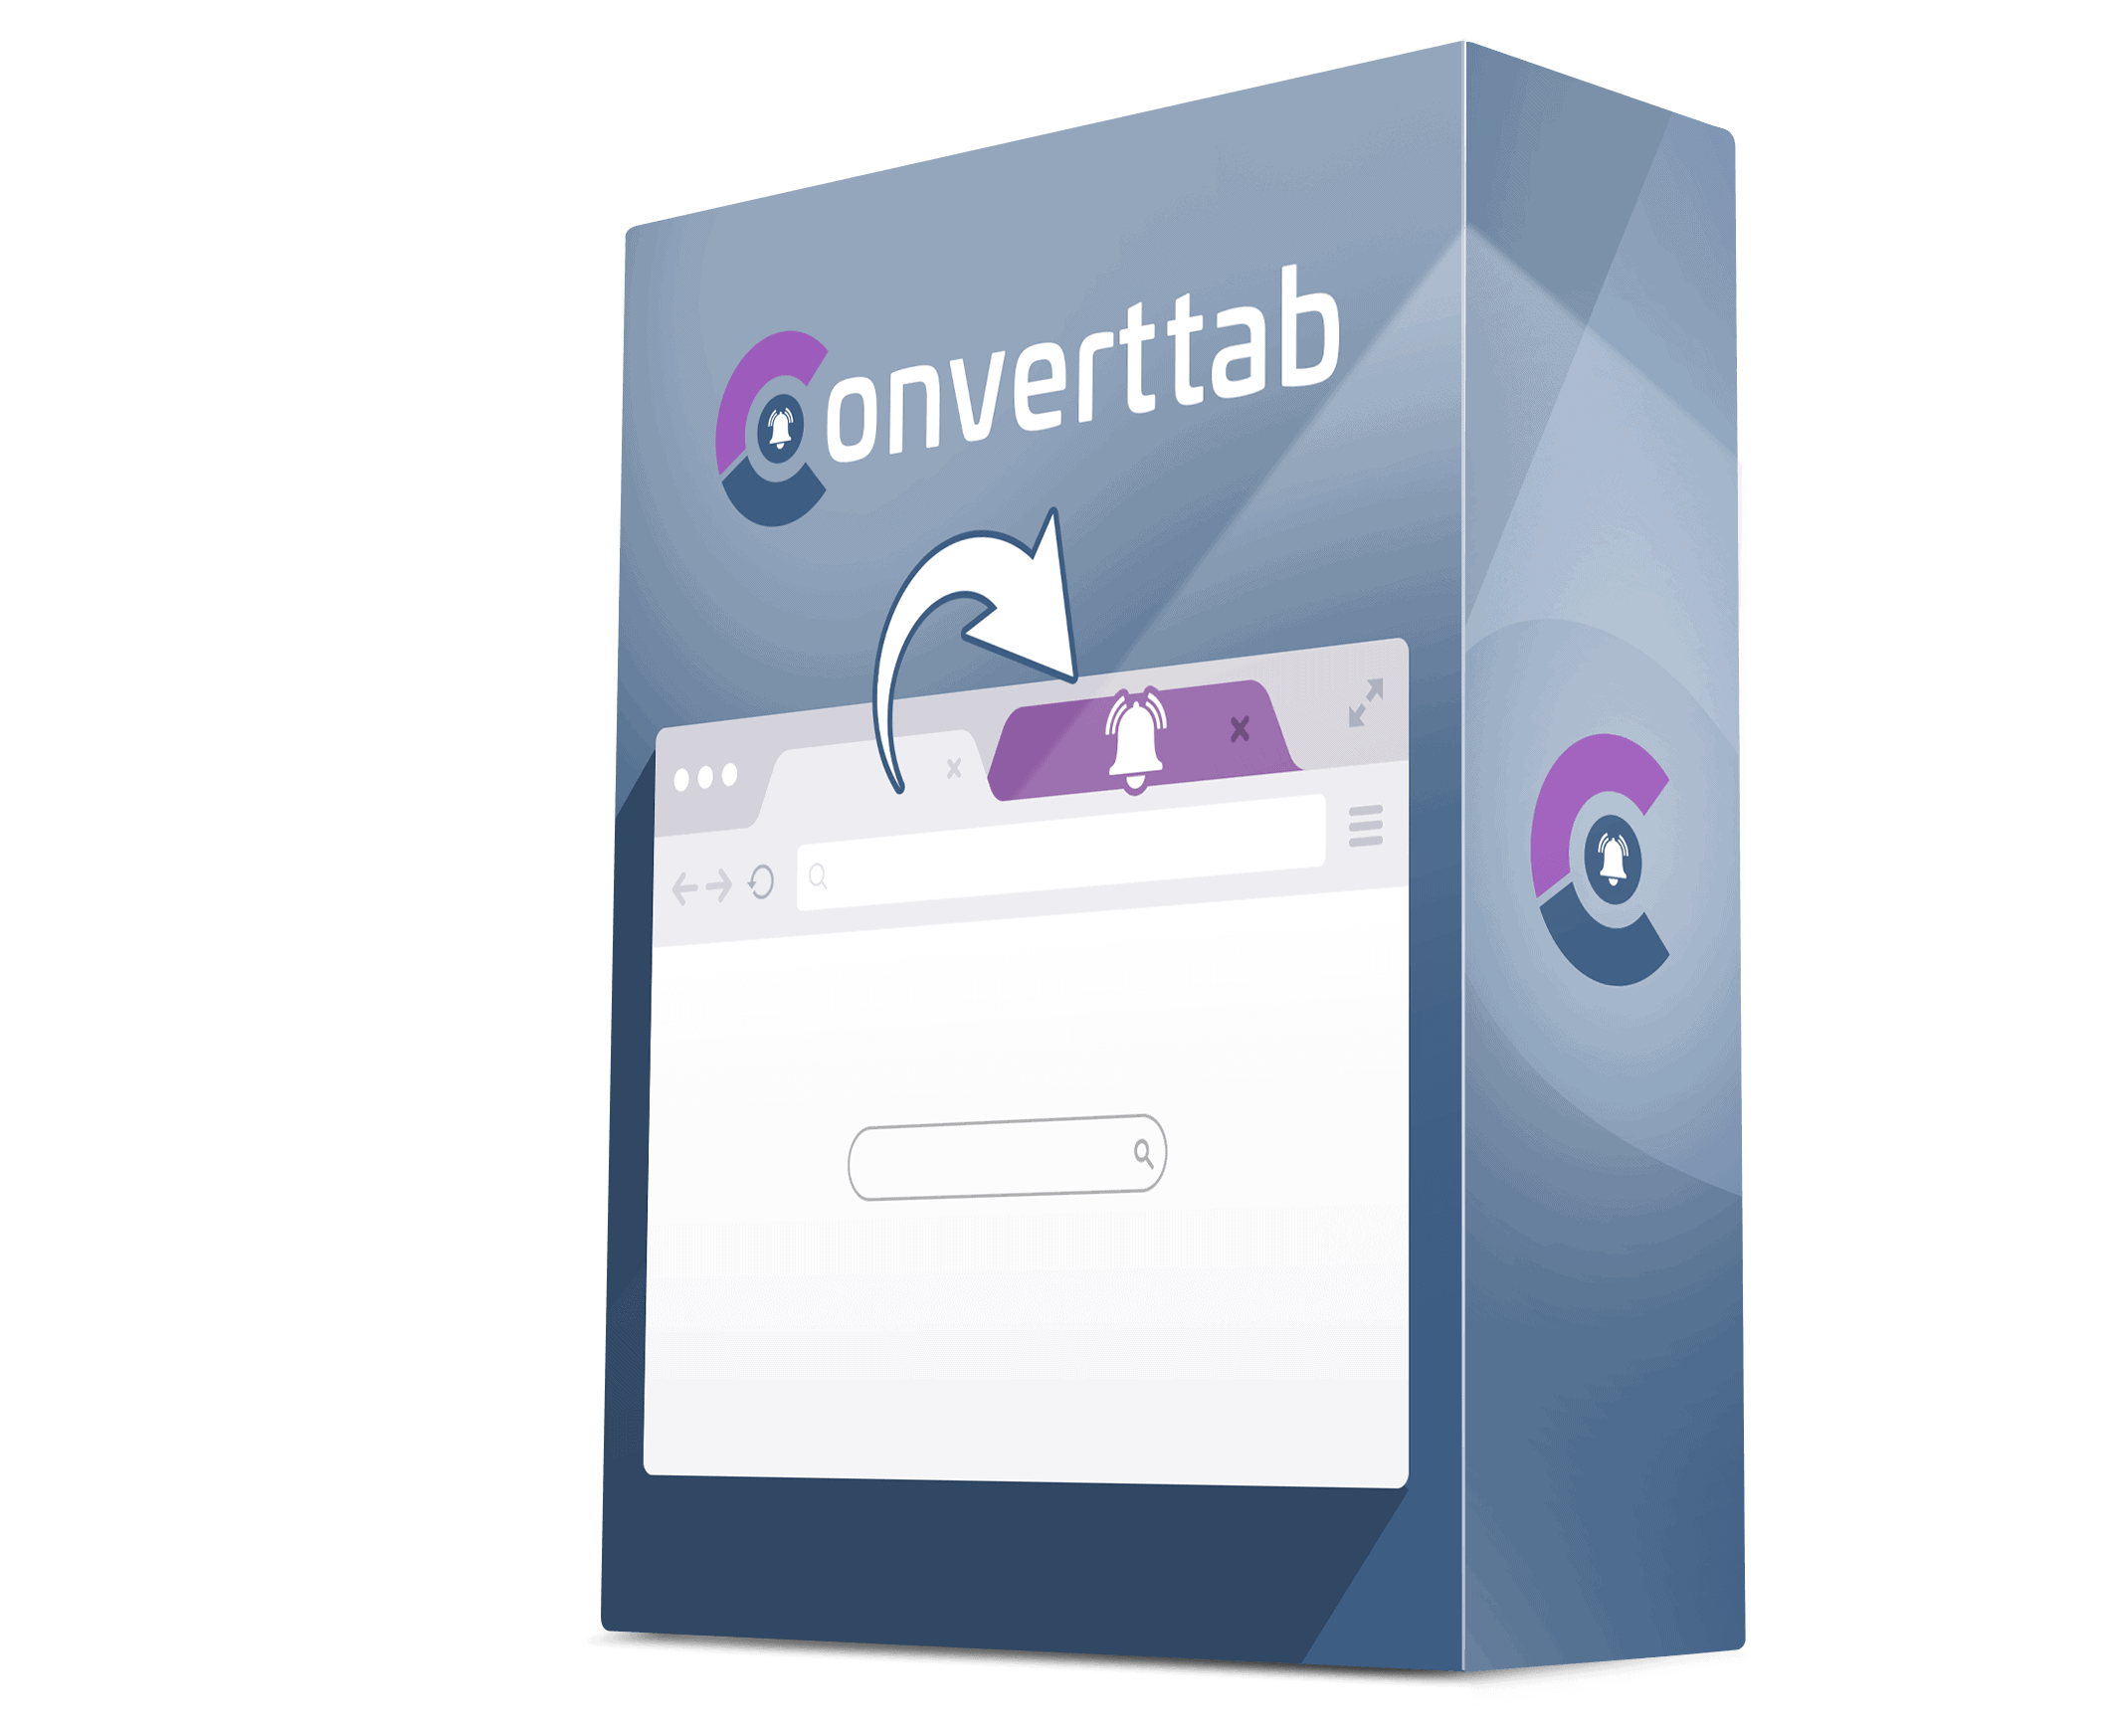 Converttab Software